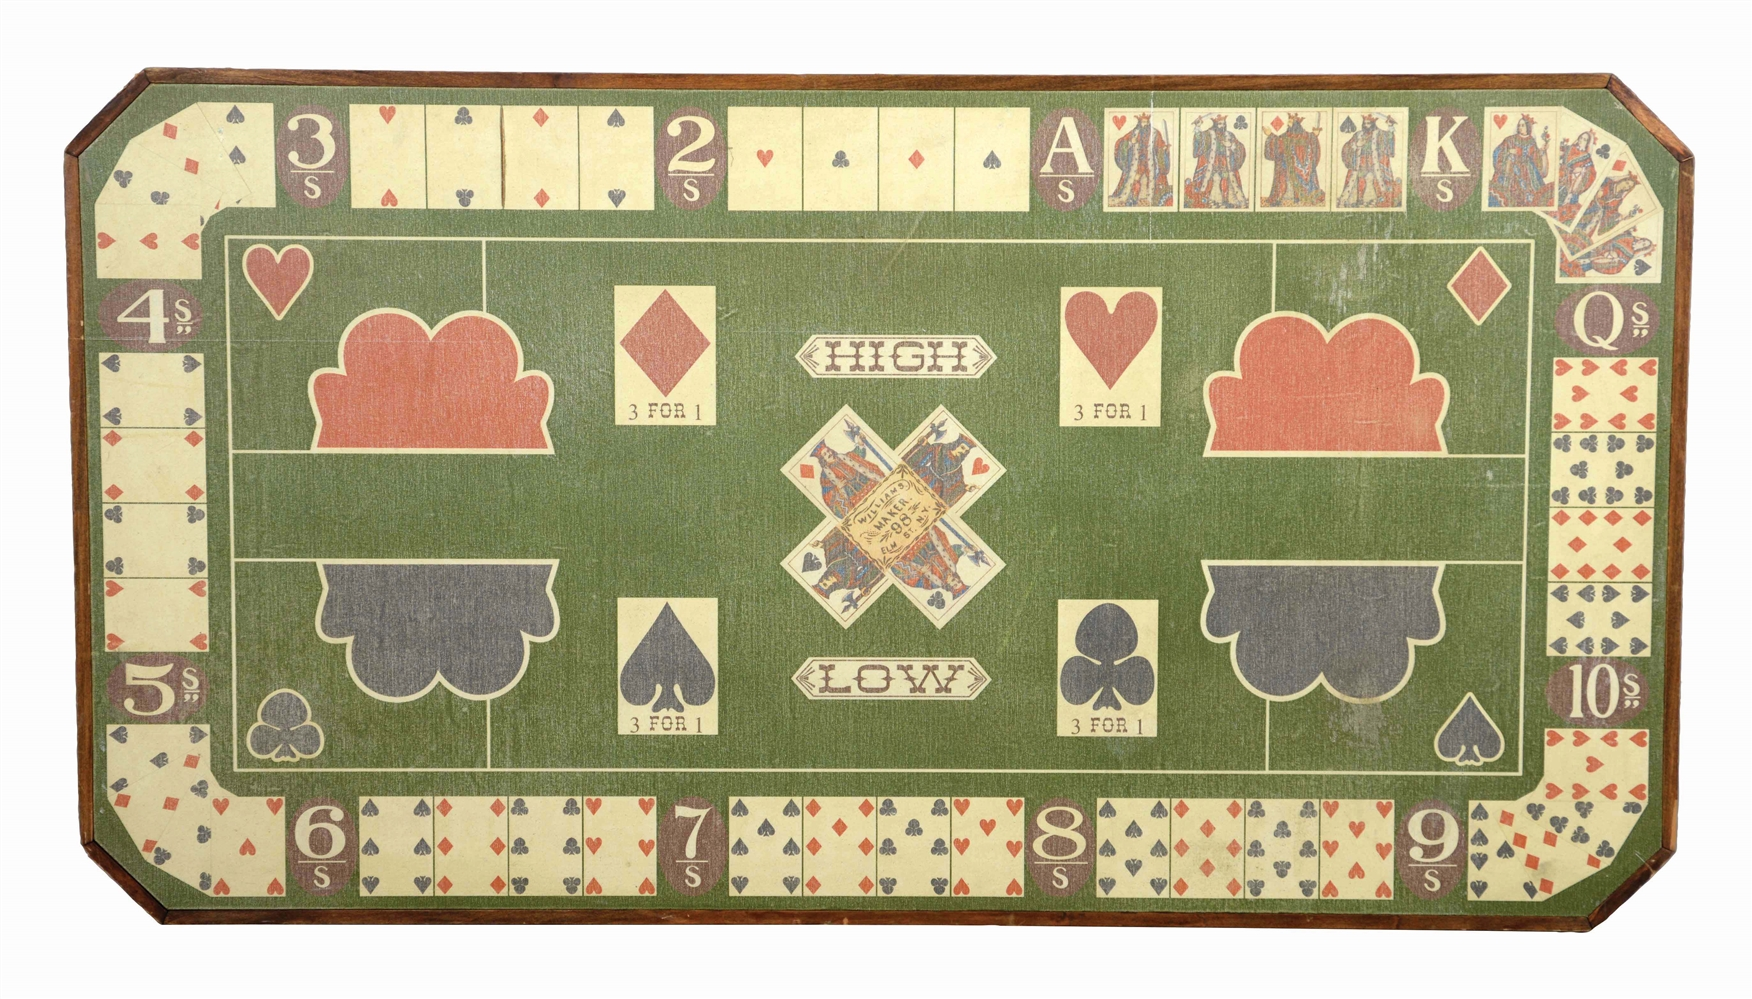 "VINTAGE ""DIANA"" CARD GAME LAYOUT."